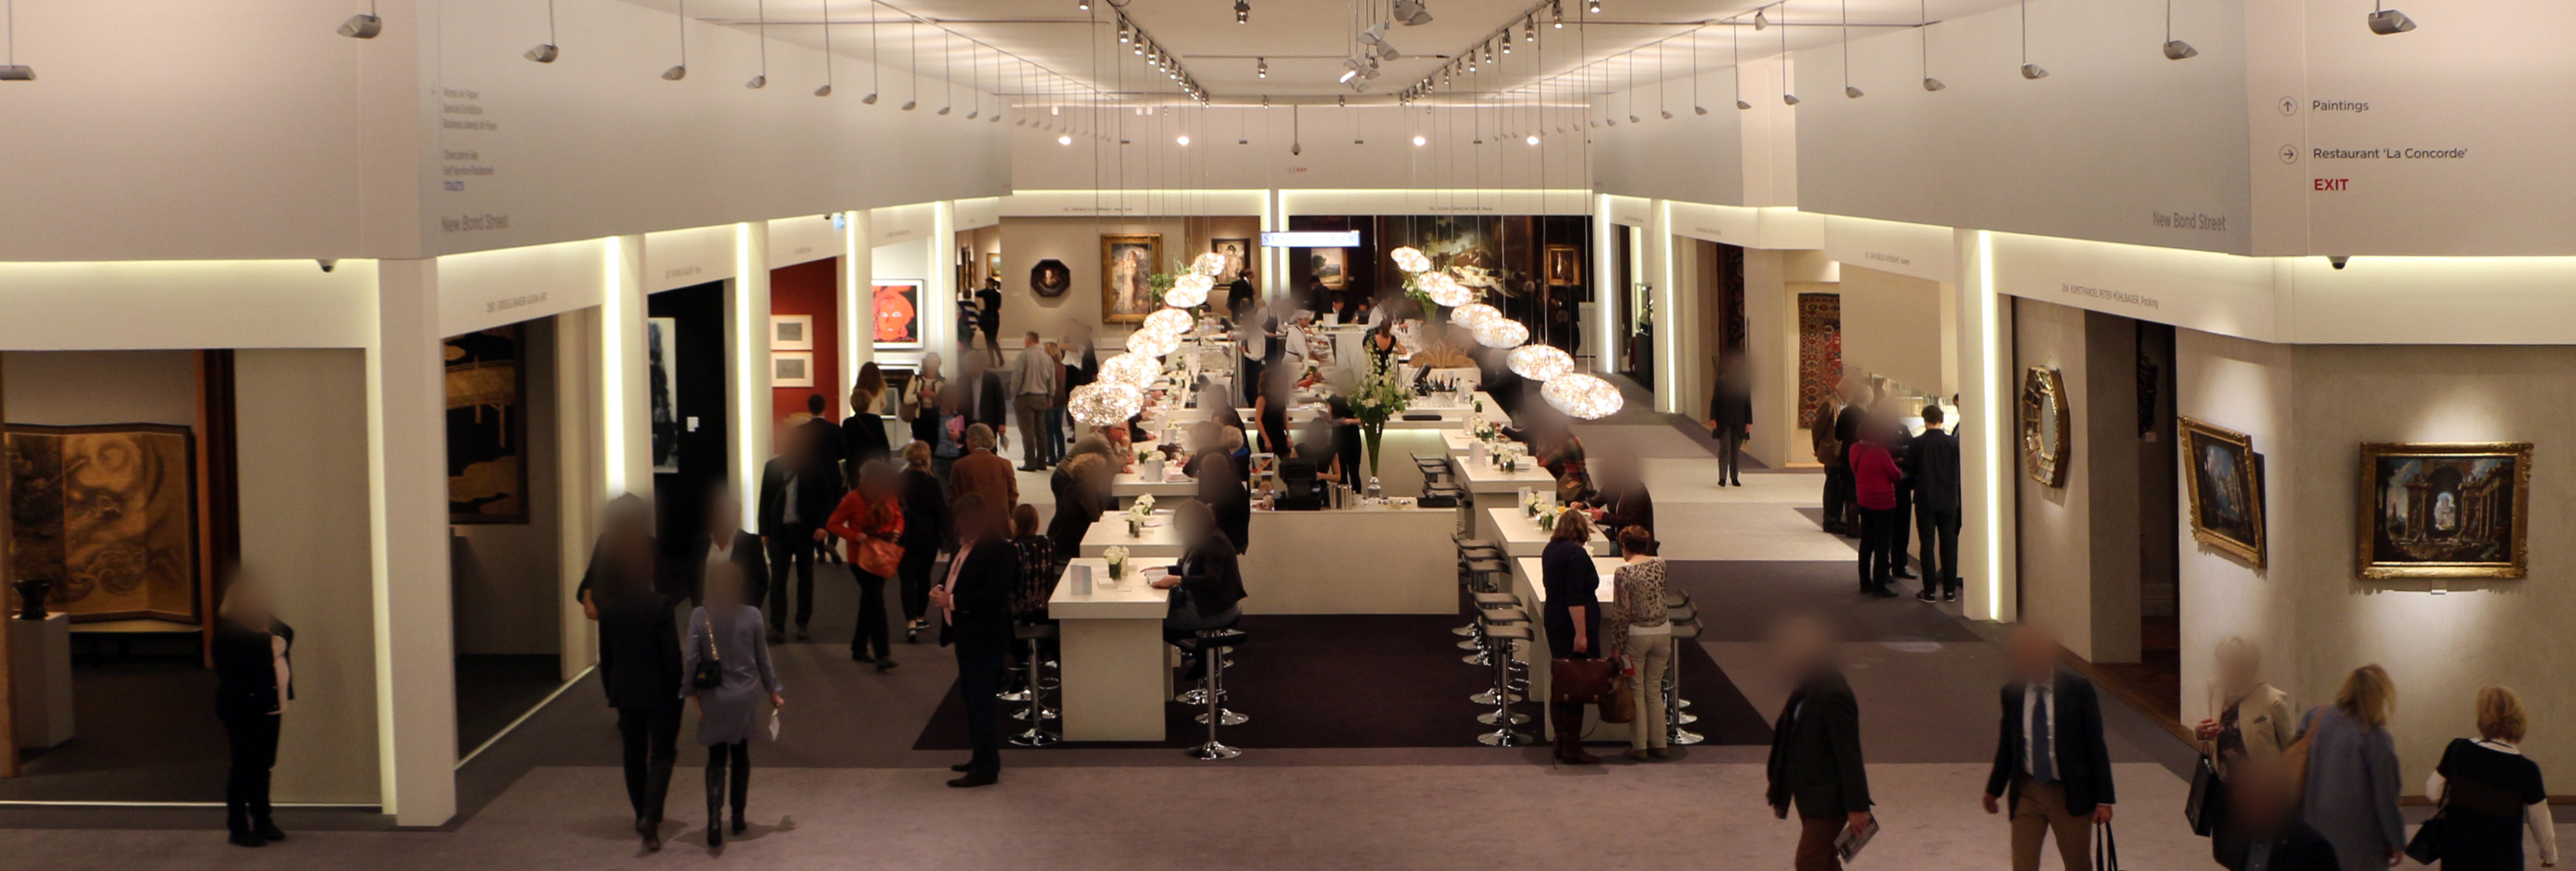 TEFAF (The European Fine Art Fair) in Maastricht, the Netherlands, 2014; image courtesy of Saiko, Wikimedia Commons